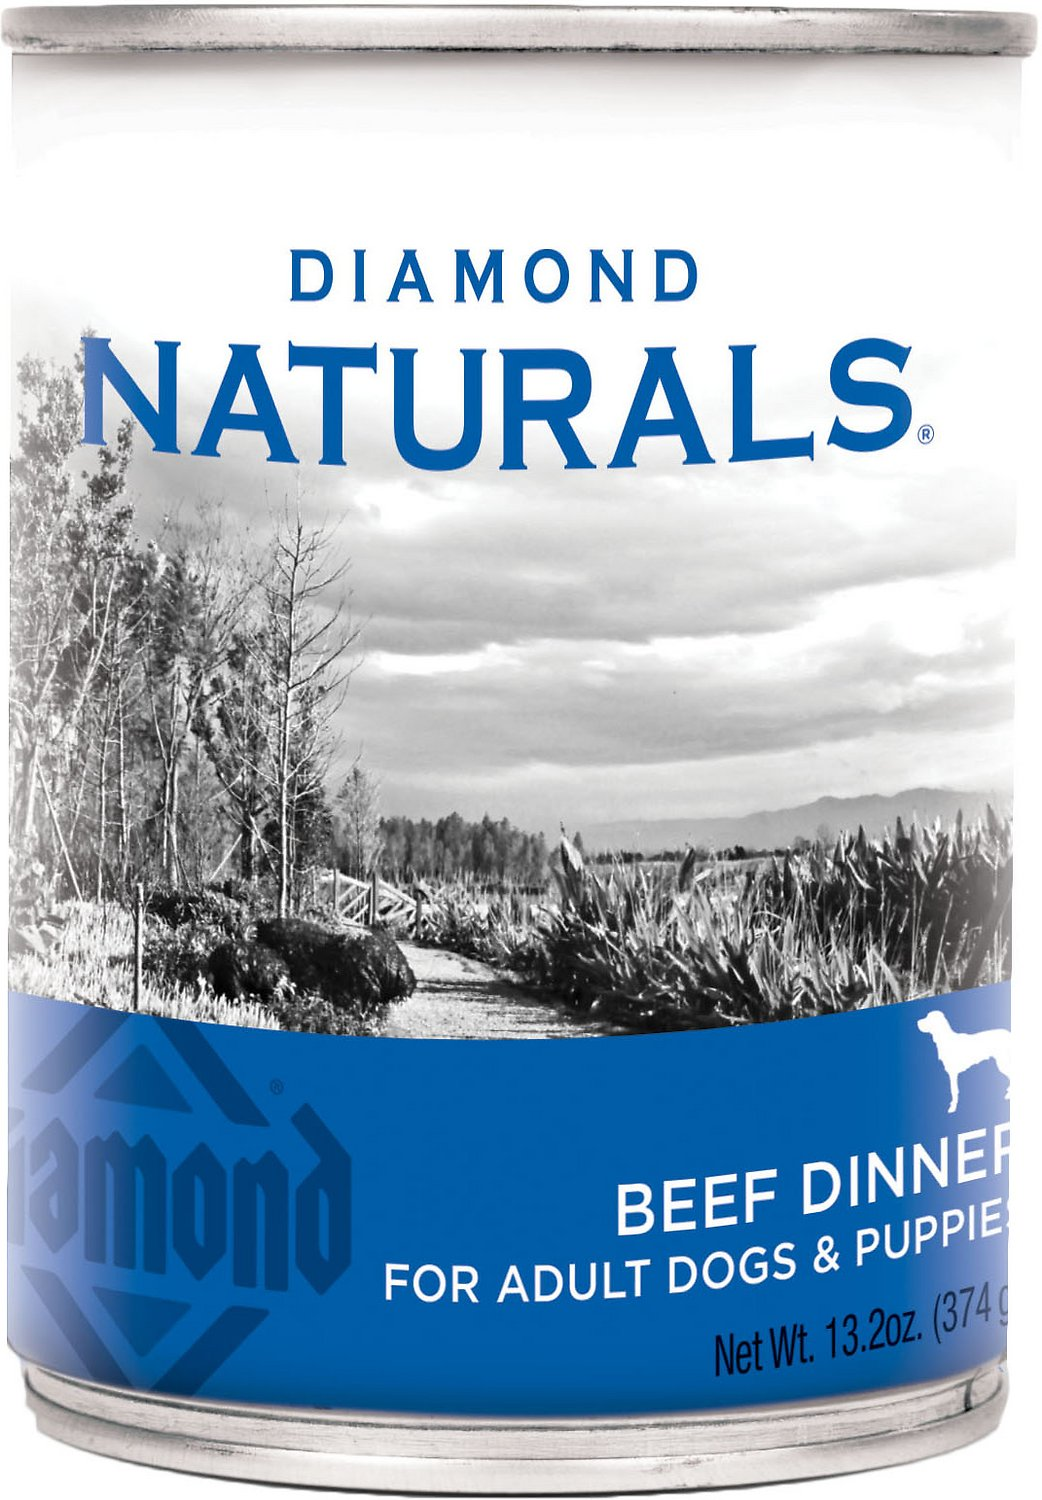 Diamond Naturals Beef Dinner Adult & Puppy Canned Dog Food, 13.2-oz